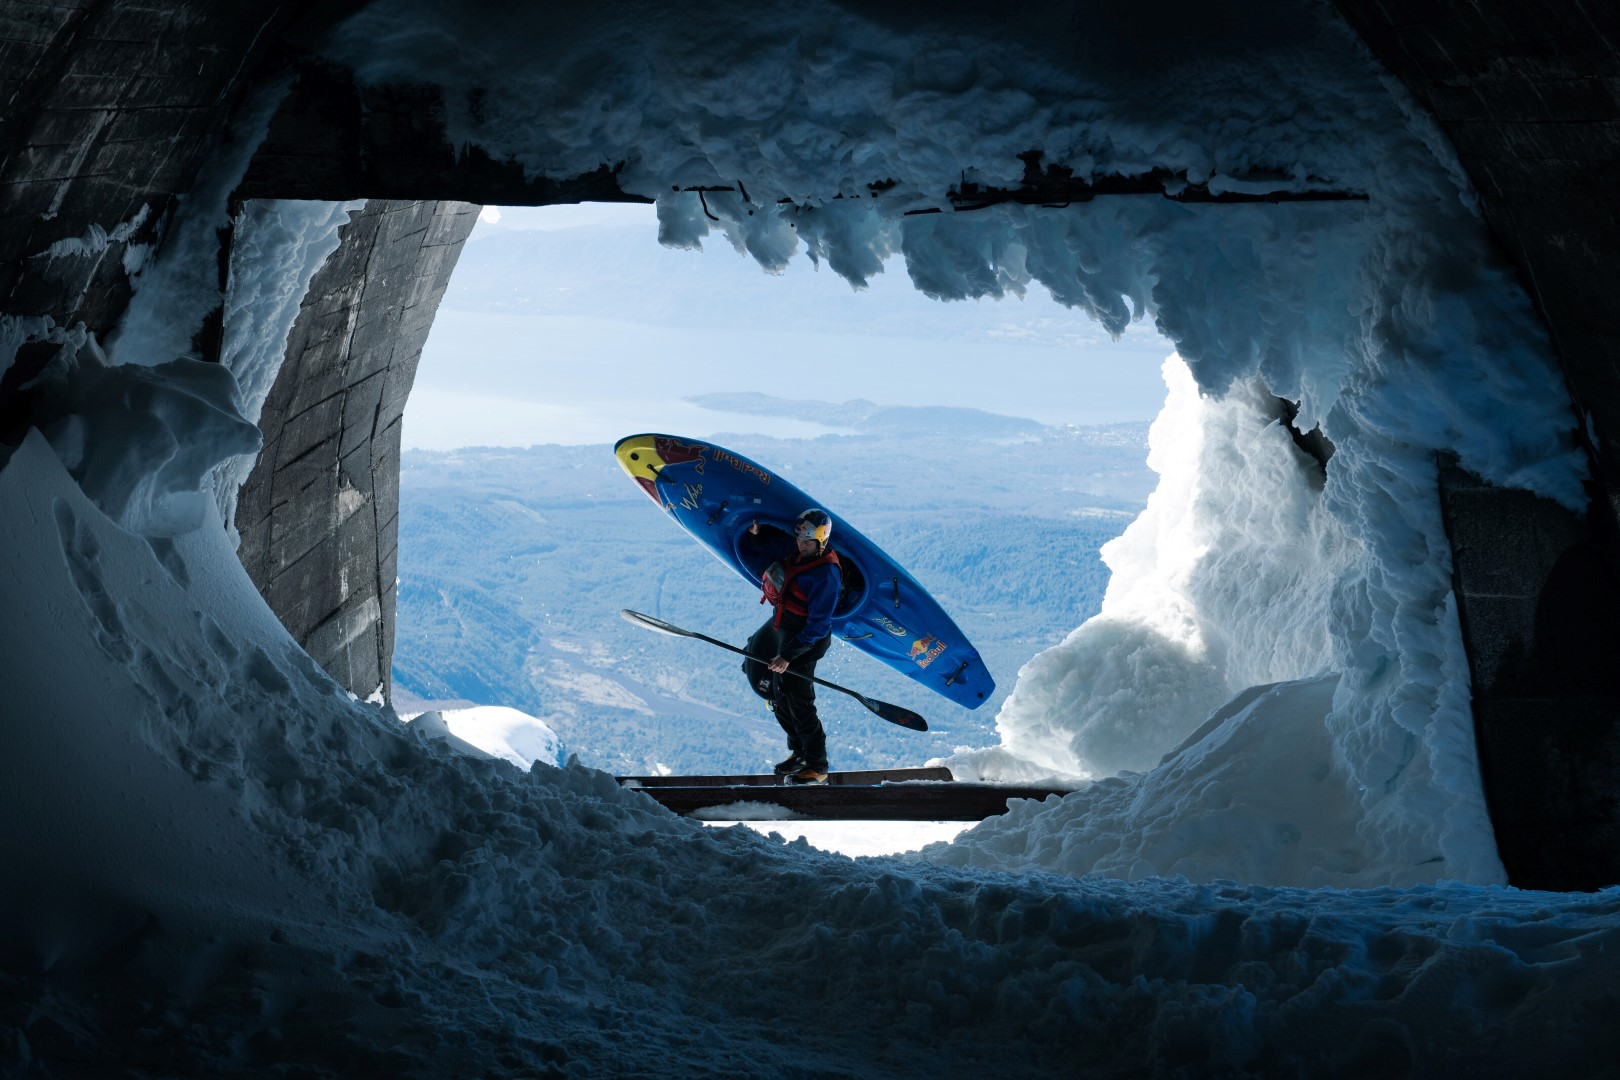 Aniol Serrasolses poses for a portrait during the Red Bull Snow Kayak project in Pucon, Region de la Araucania on September 14, 2020 // SI202103260903 // Usage for editorial use only //